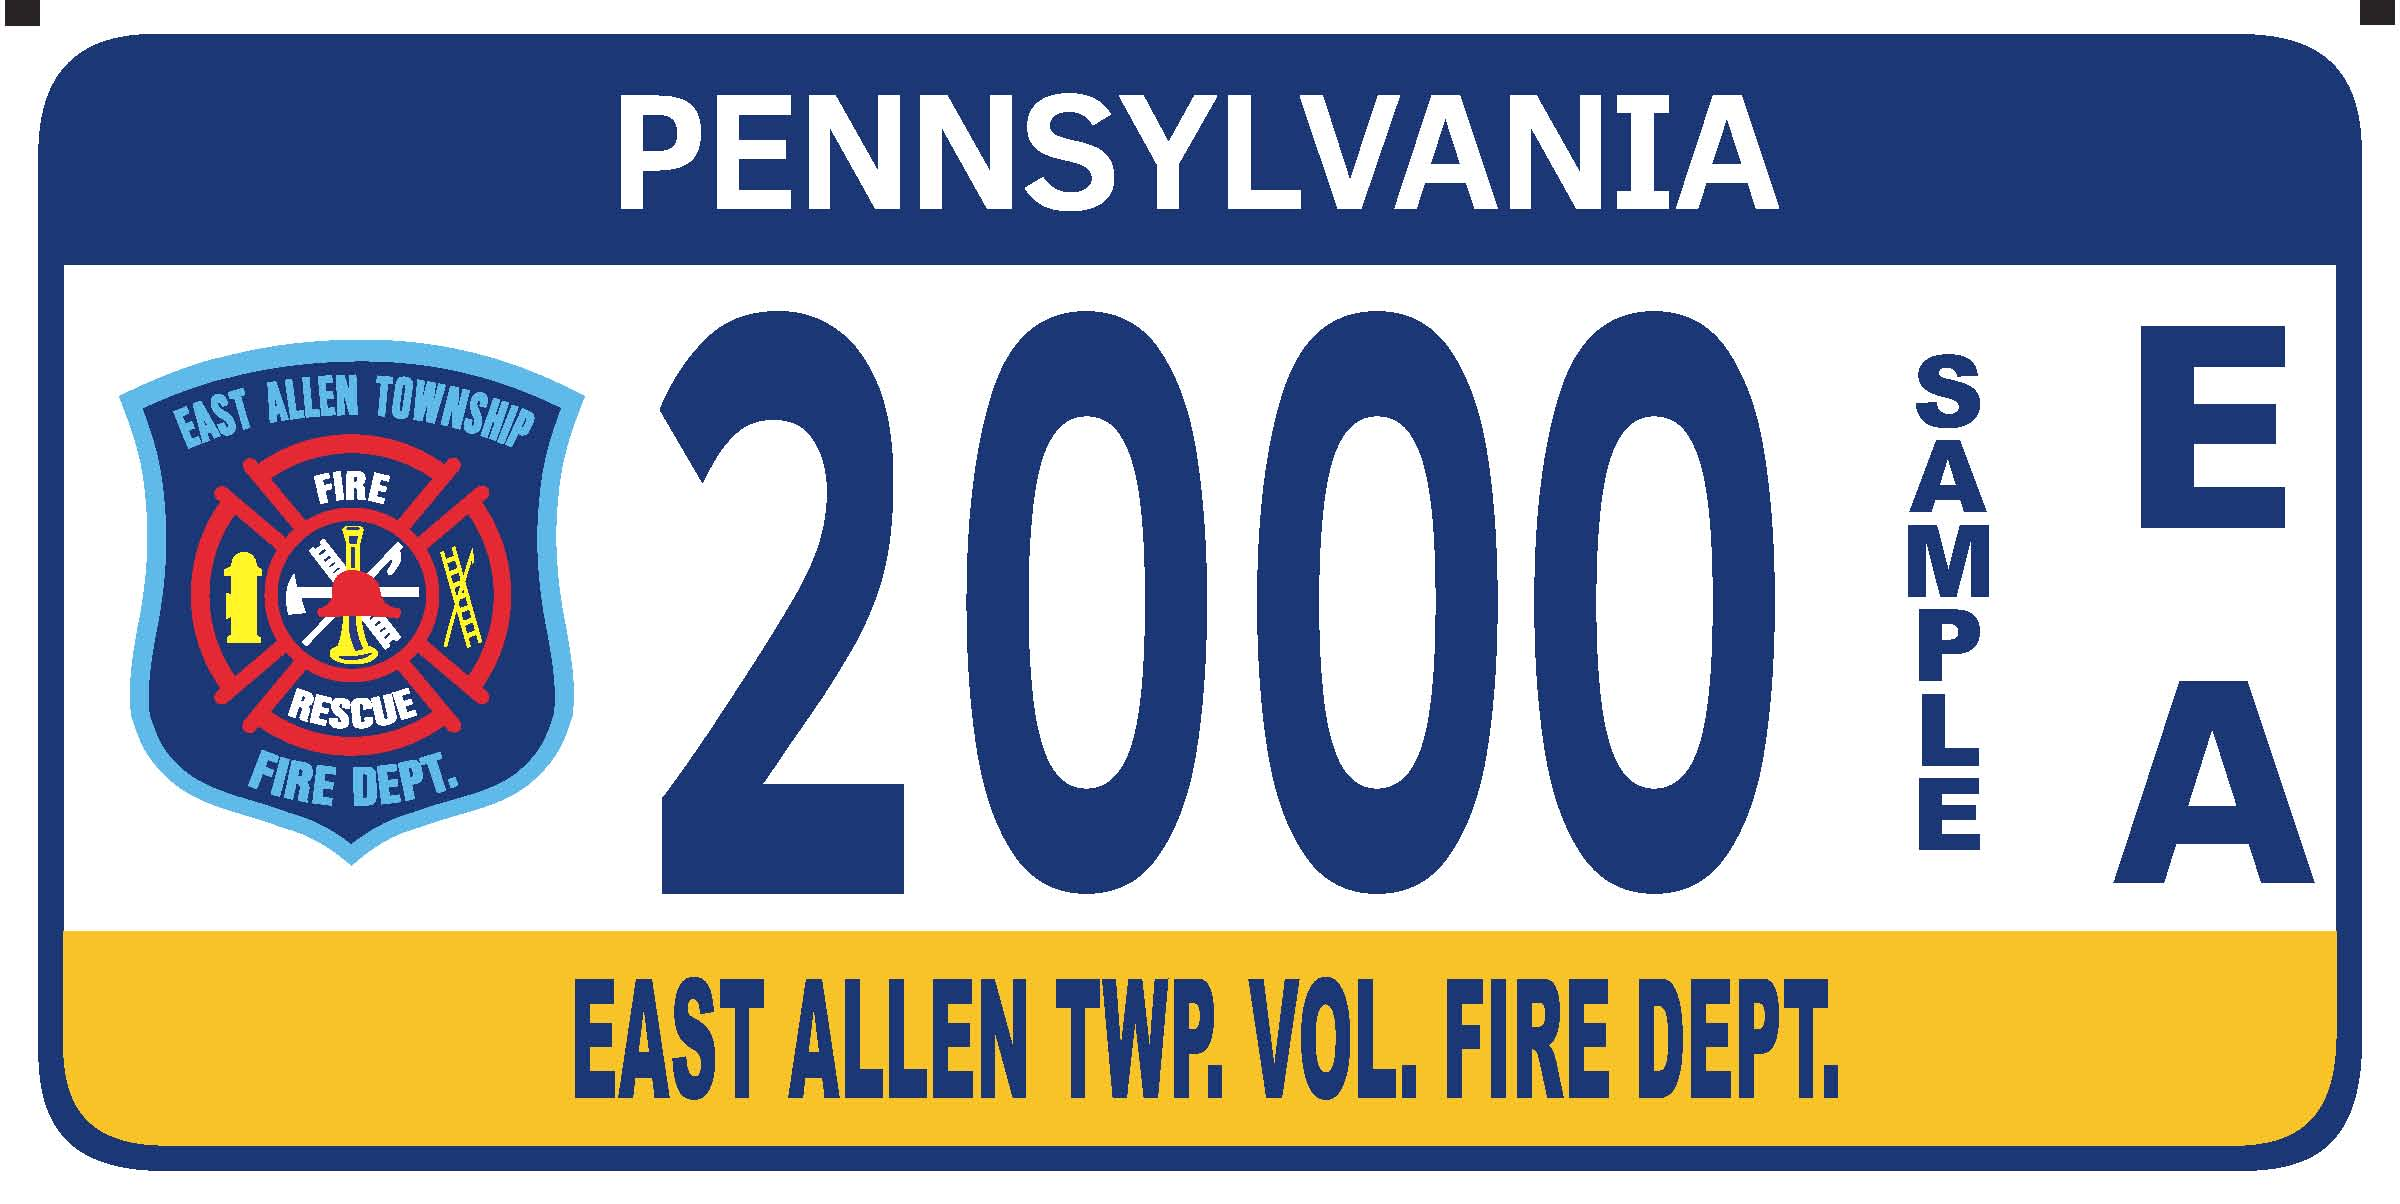 East Allen Twp. Vol. Fire Dept.